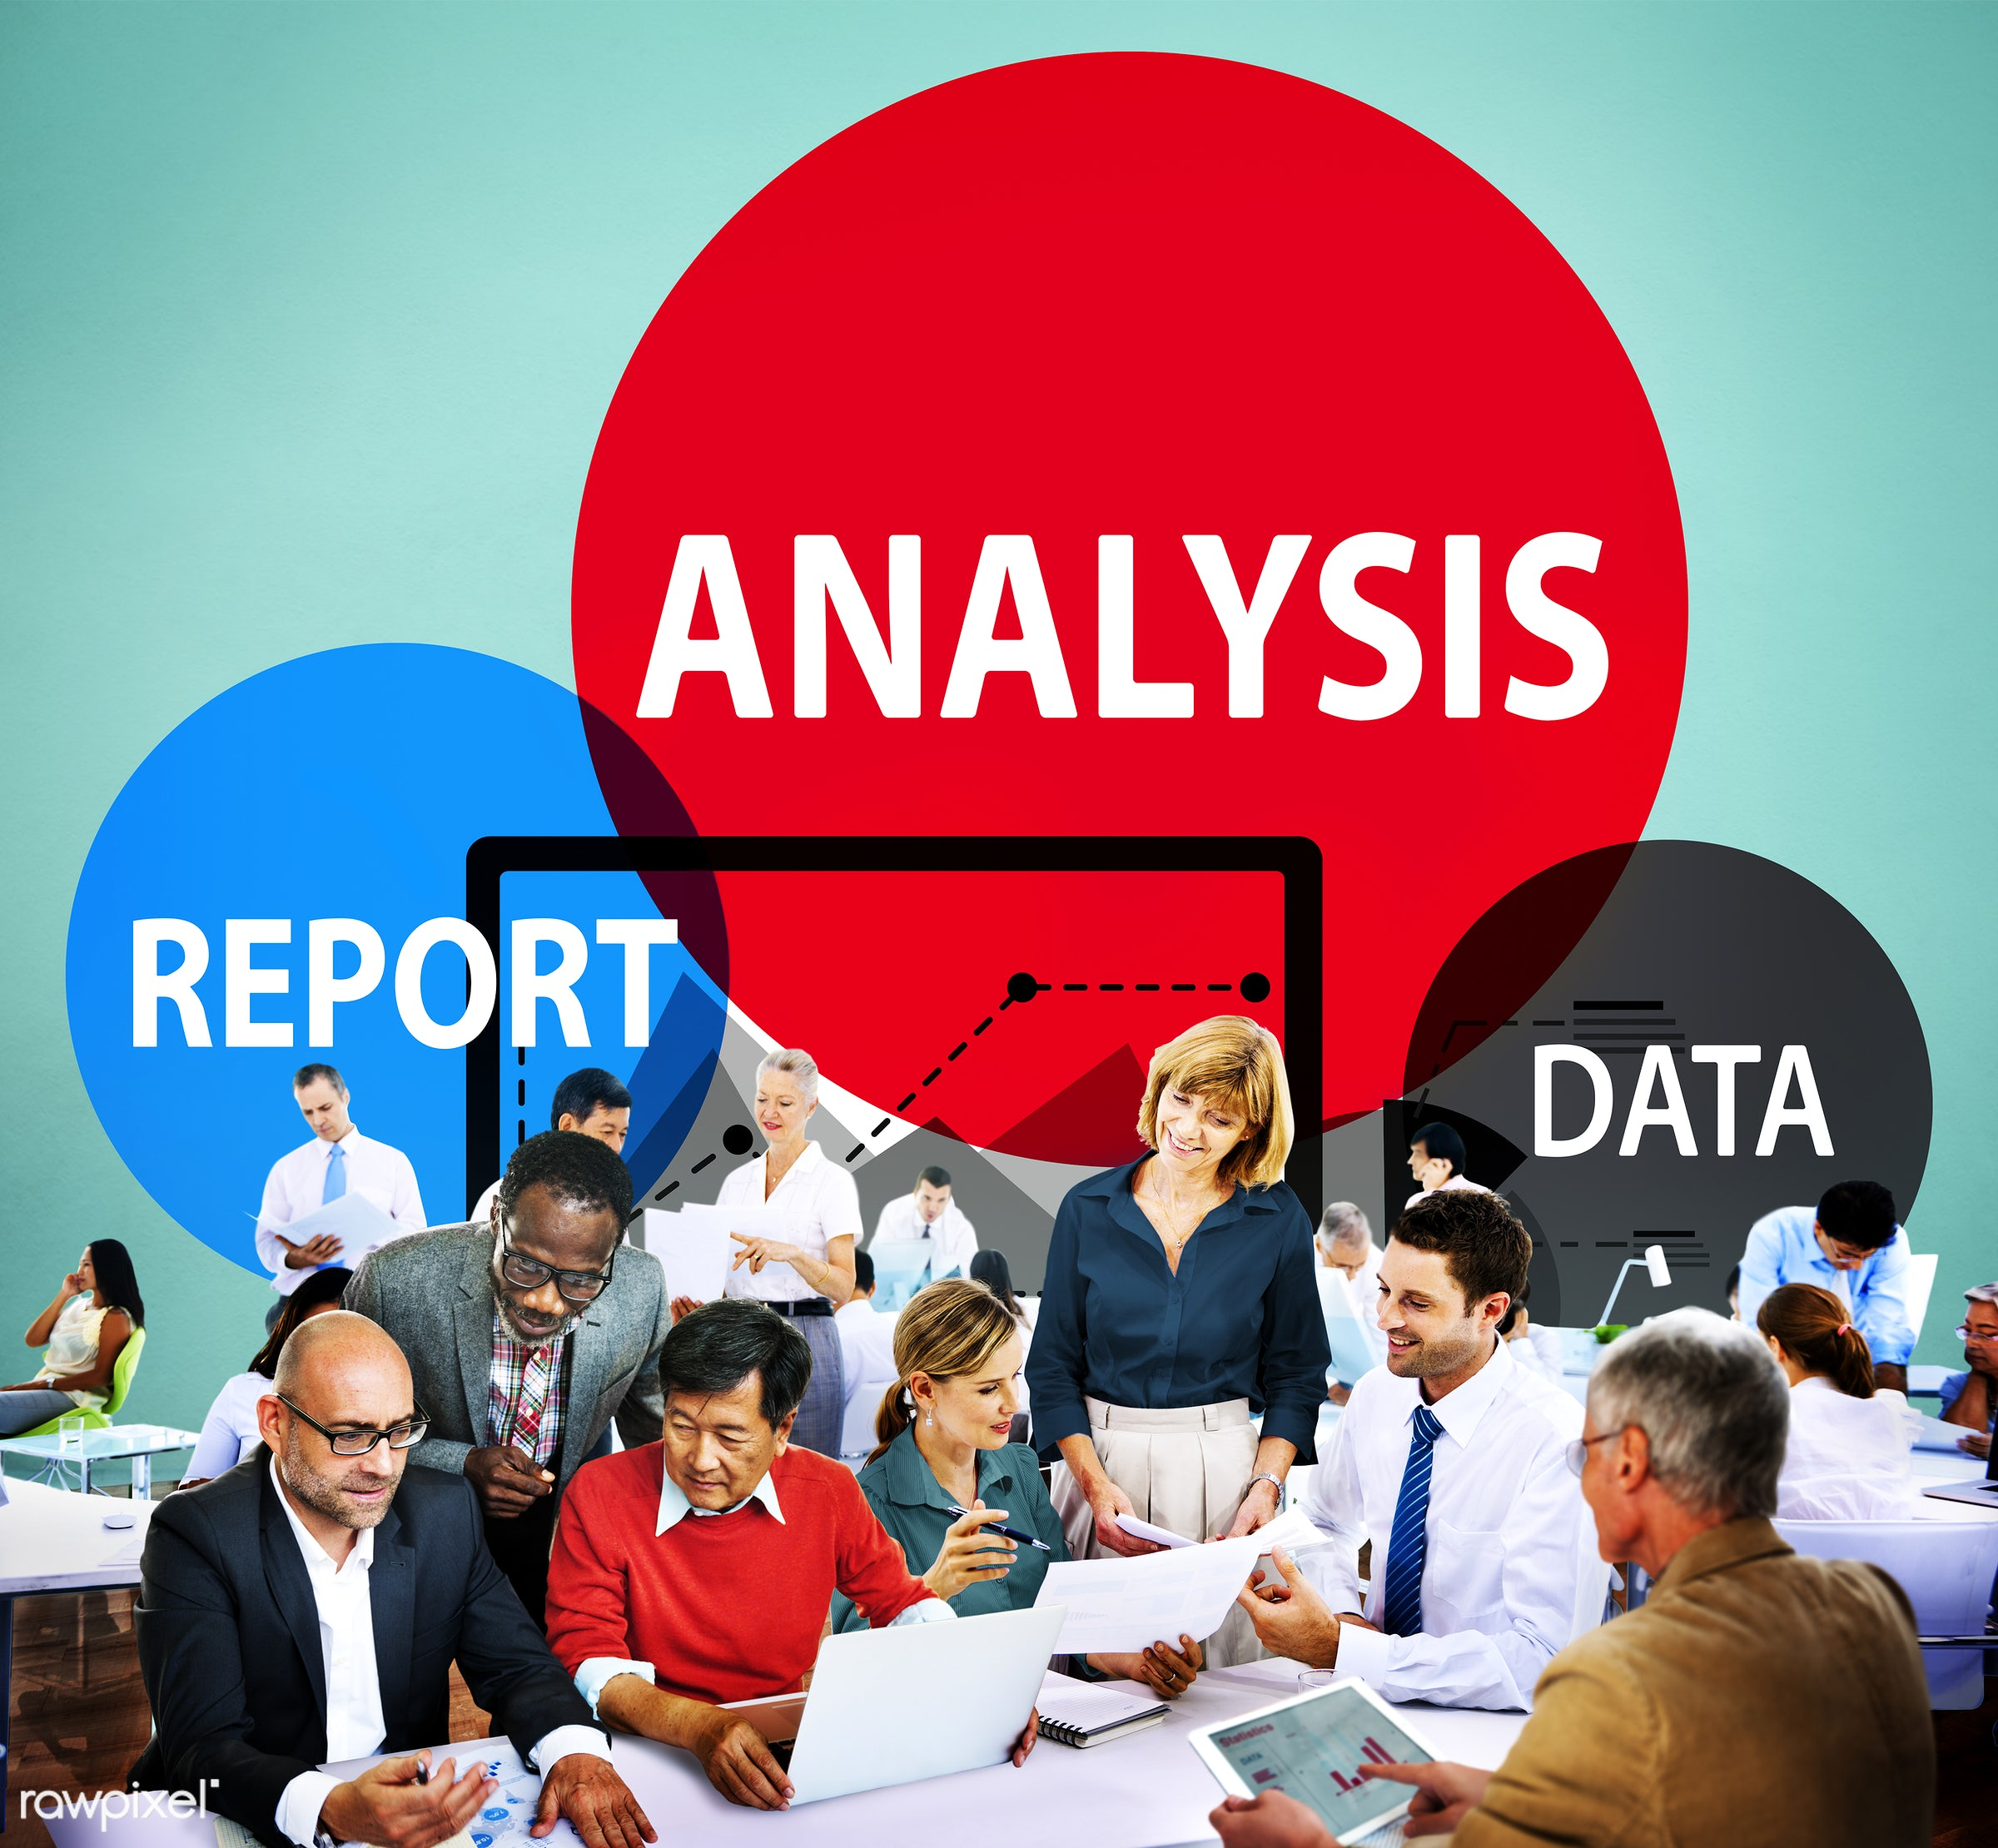 analysis, analyze, business, business people, businessmen, businesswomen, busy, communication, conversation, corporate, data...